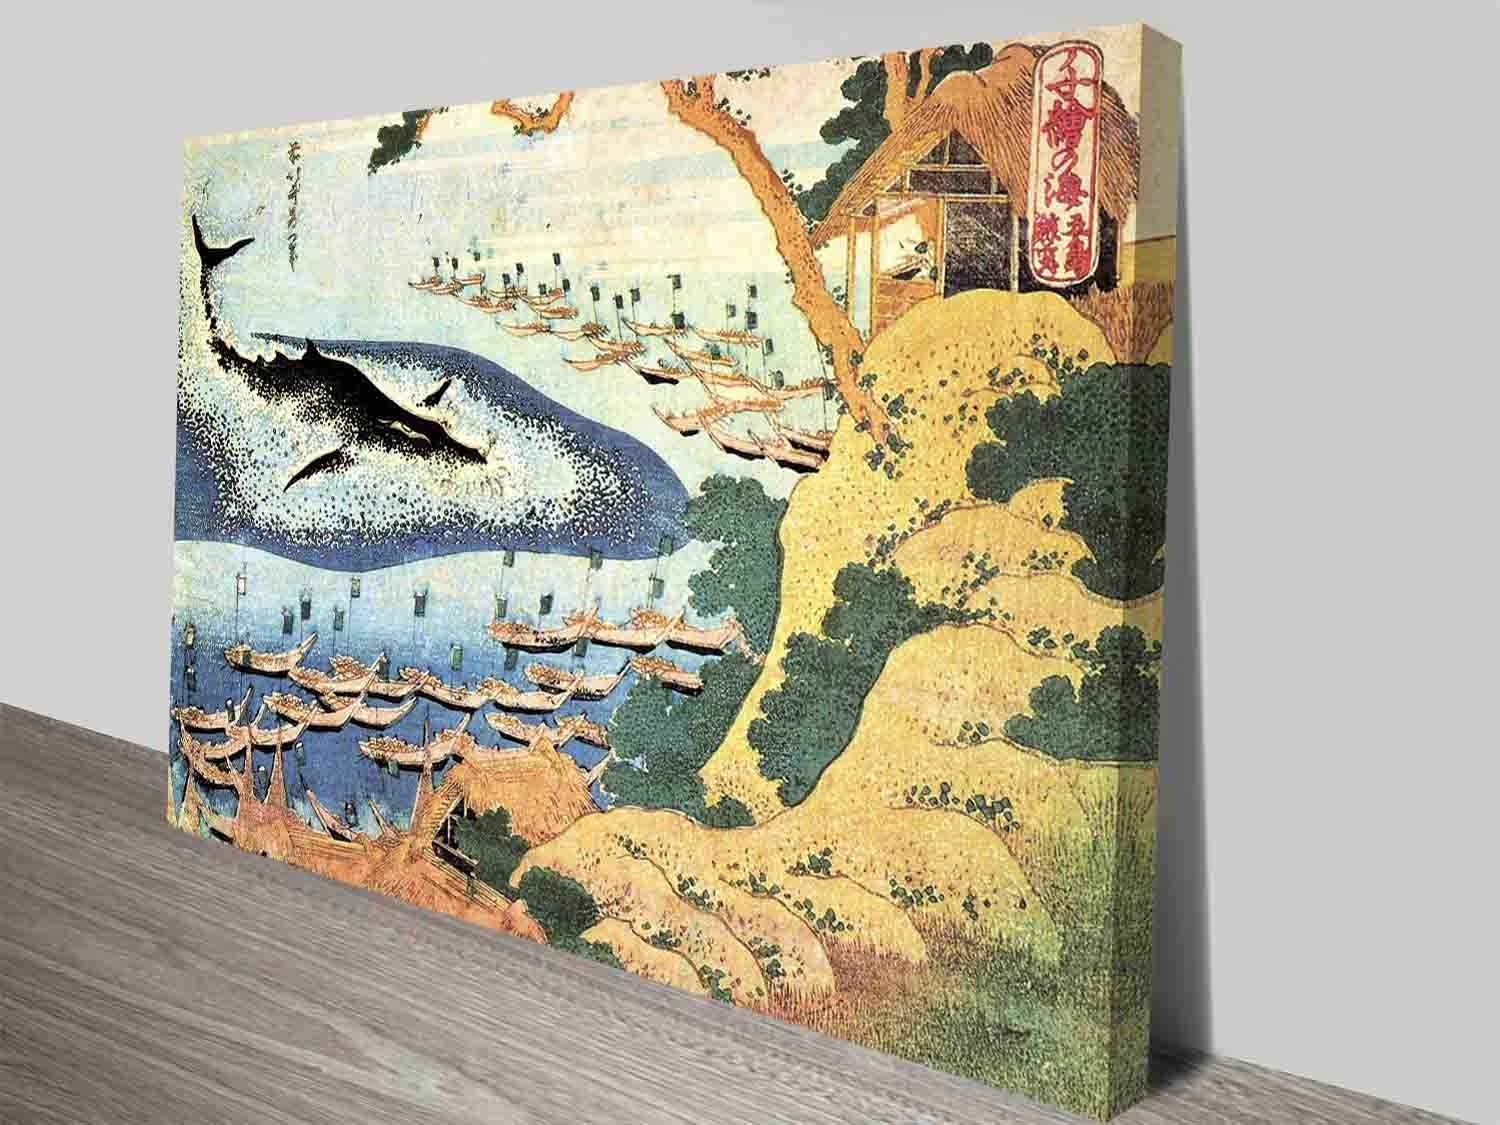 Katsushika Hokusai Ocean Landscape And Whale Wall Art Prints On With Most Up To Date Whale Canvas Wall Art (Gallery 7 of 20)